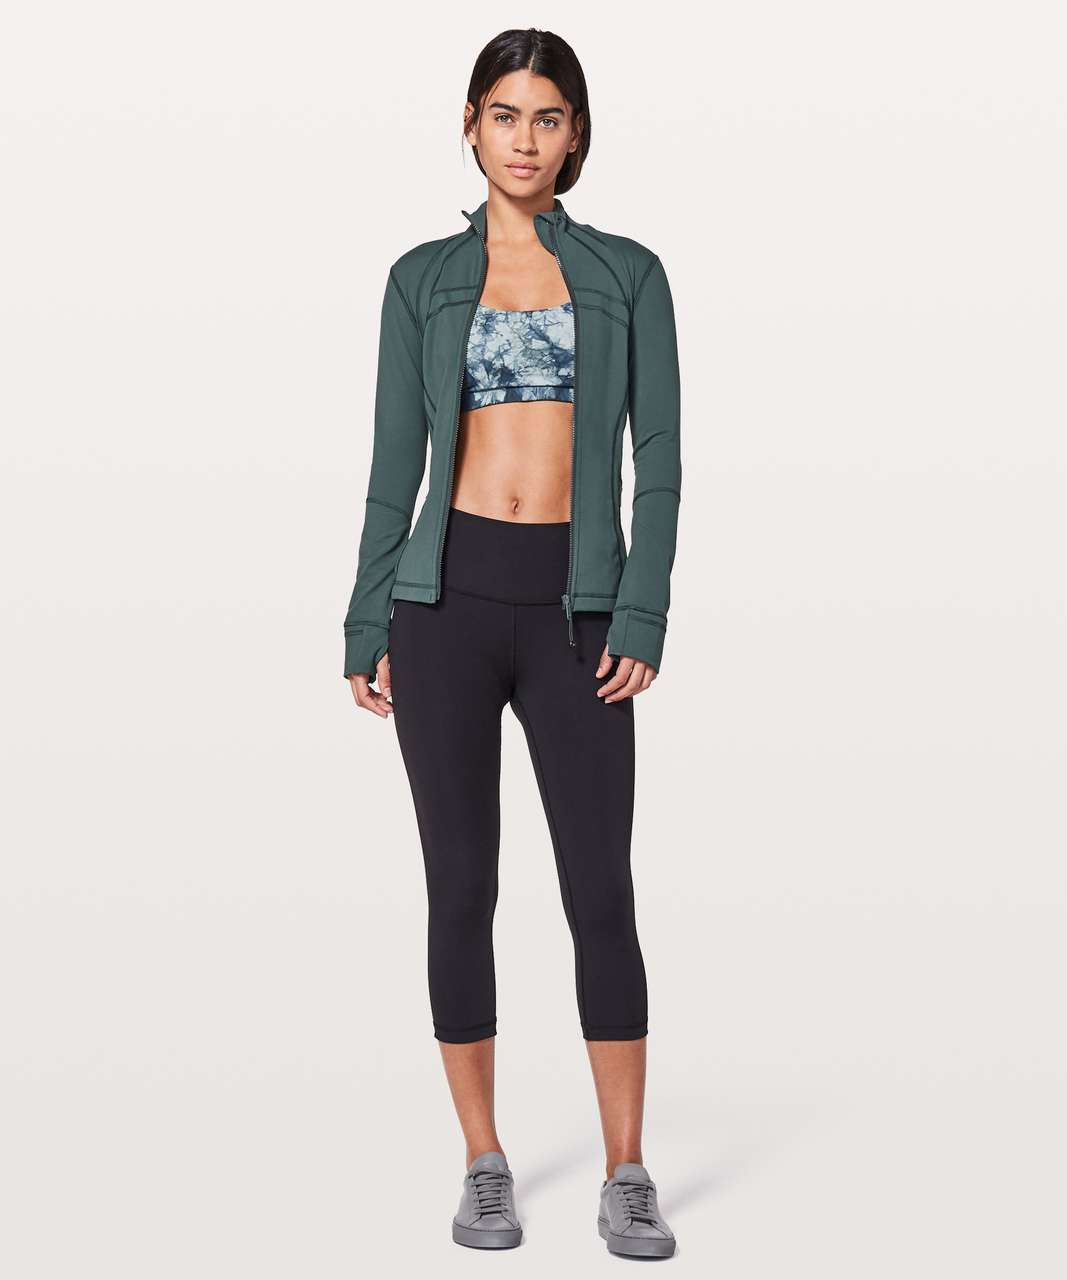 Lululemon Define Jacket - Gravity